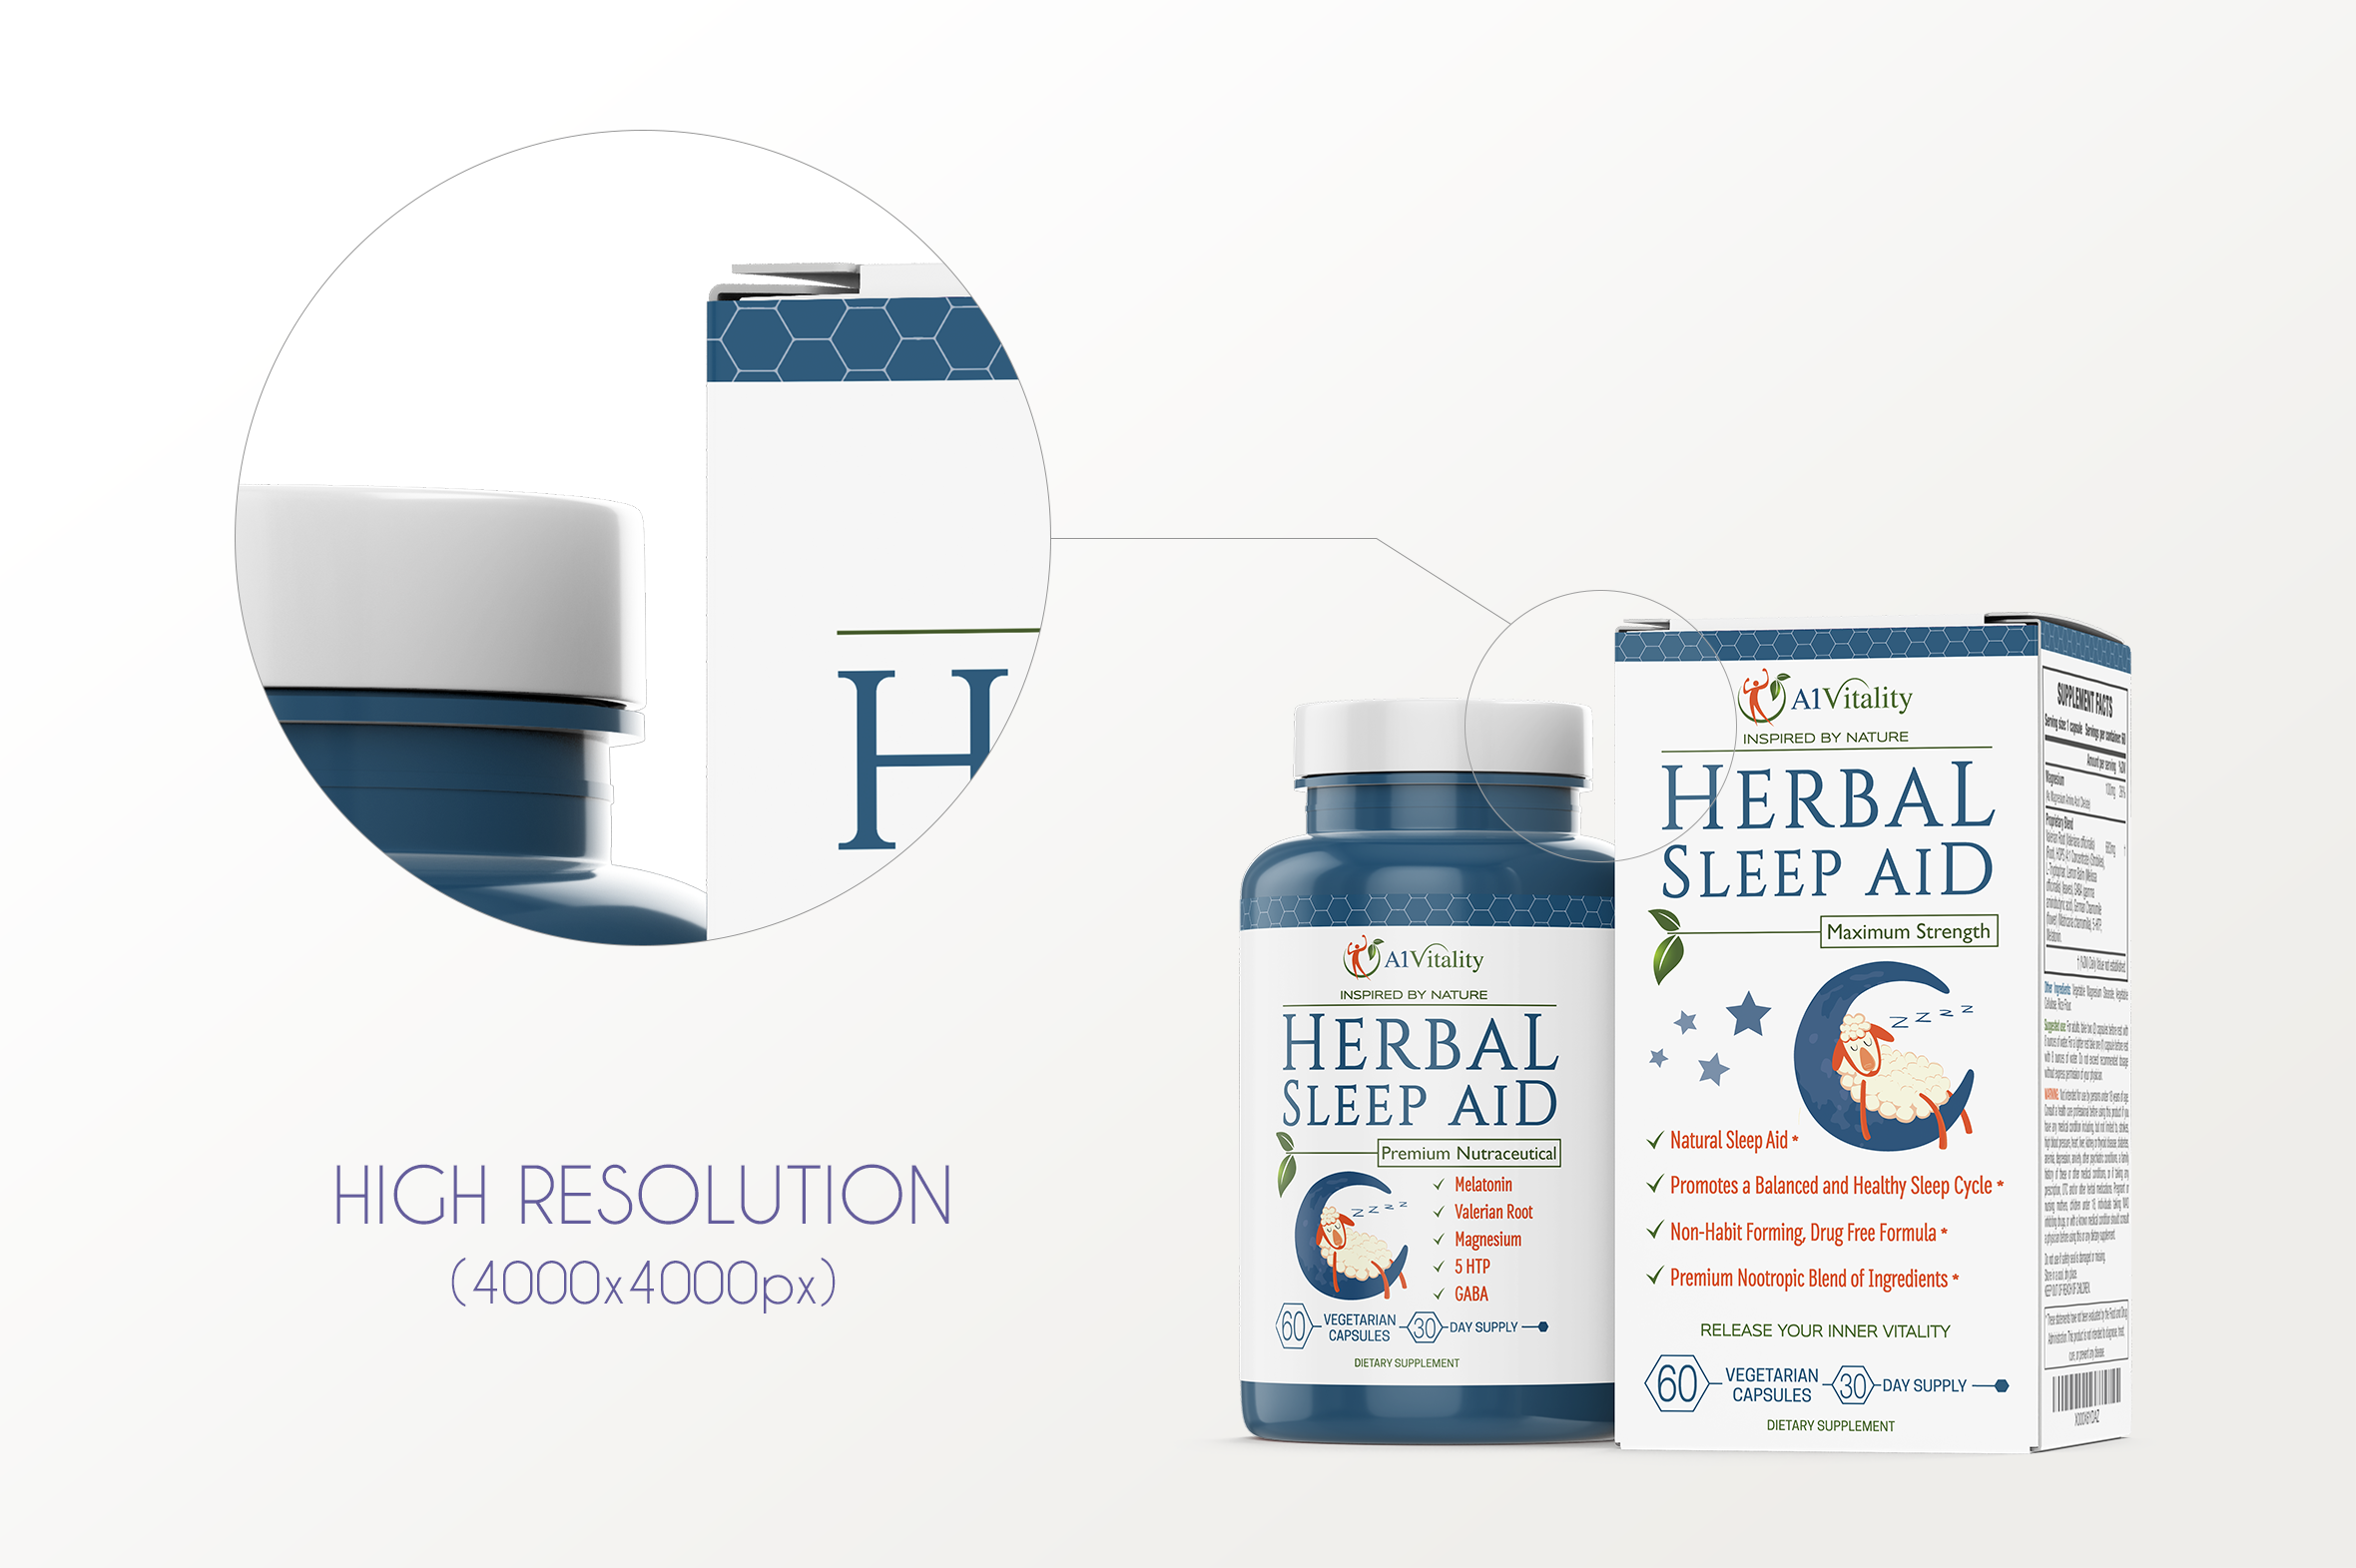 Dietary Supplement Mockup v. 1C example image 5